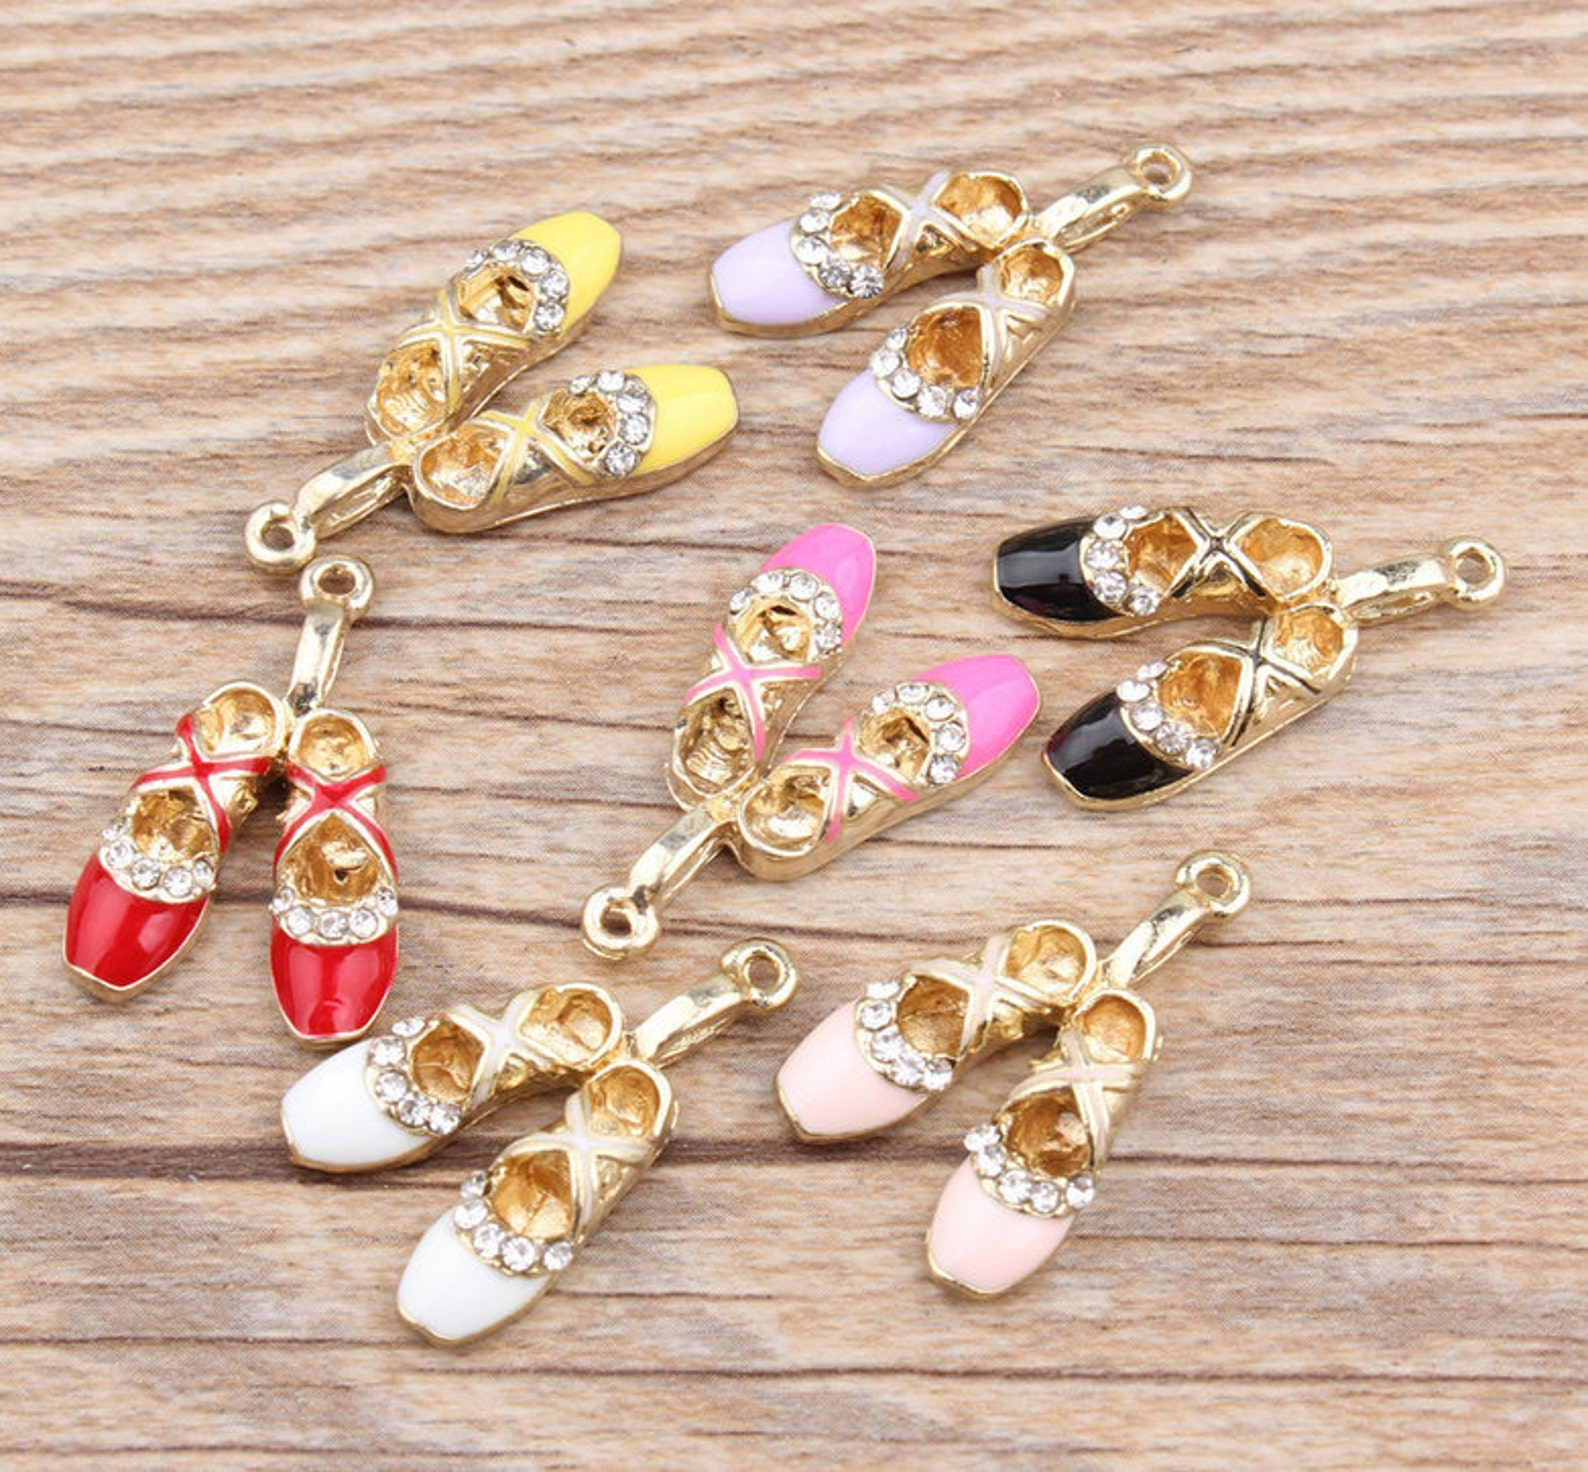 ballet shoe charms, 10pcs, 17*27mm, enamel charms, bracelet charms ,shoes charm, ballerina charm, dance charm, black, white, yel